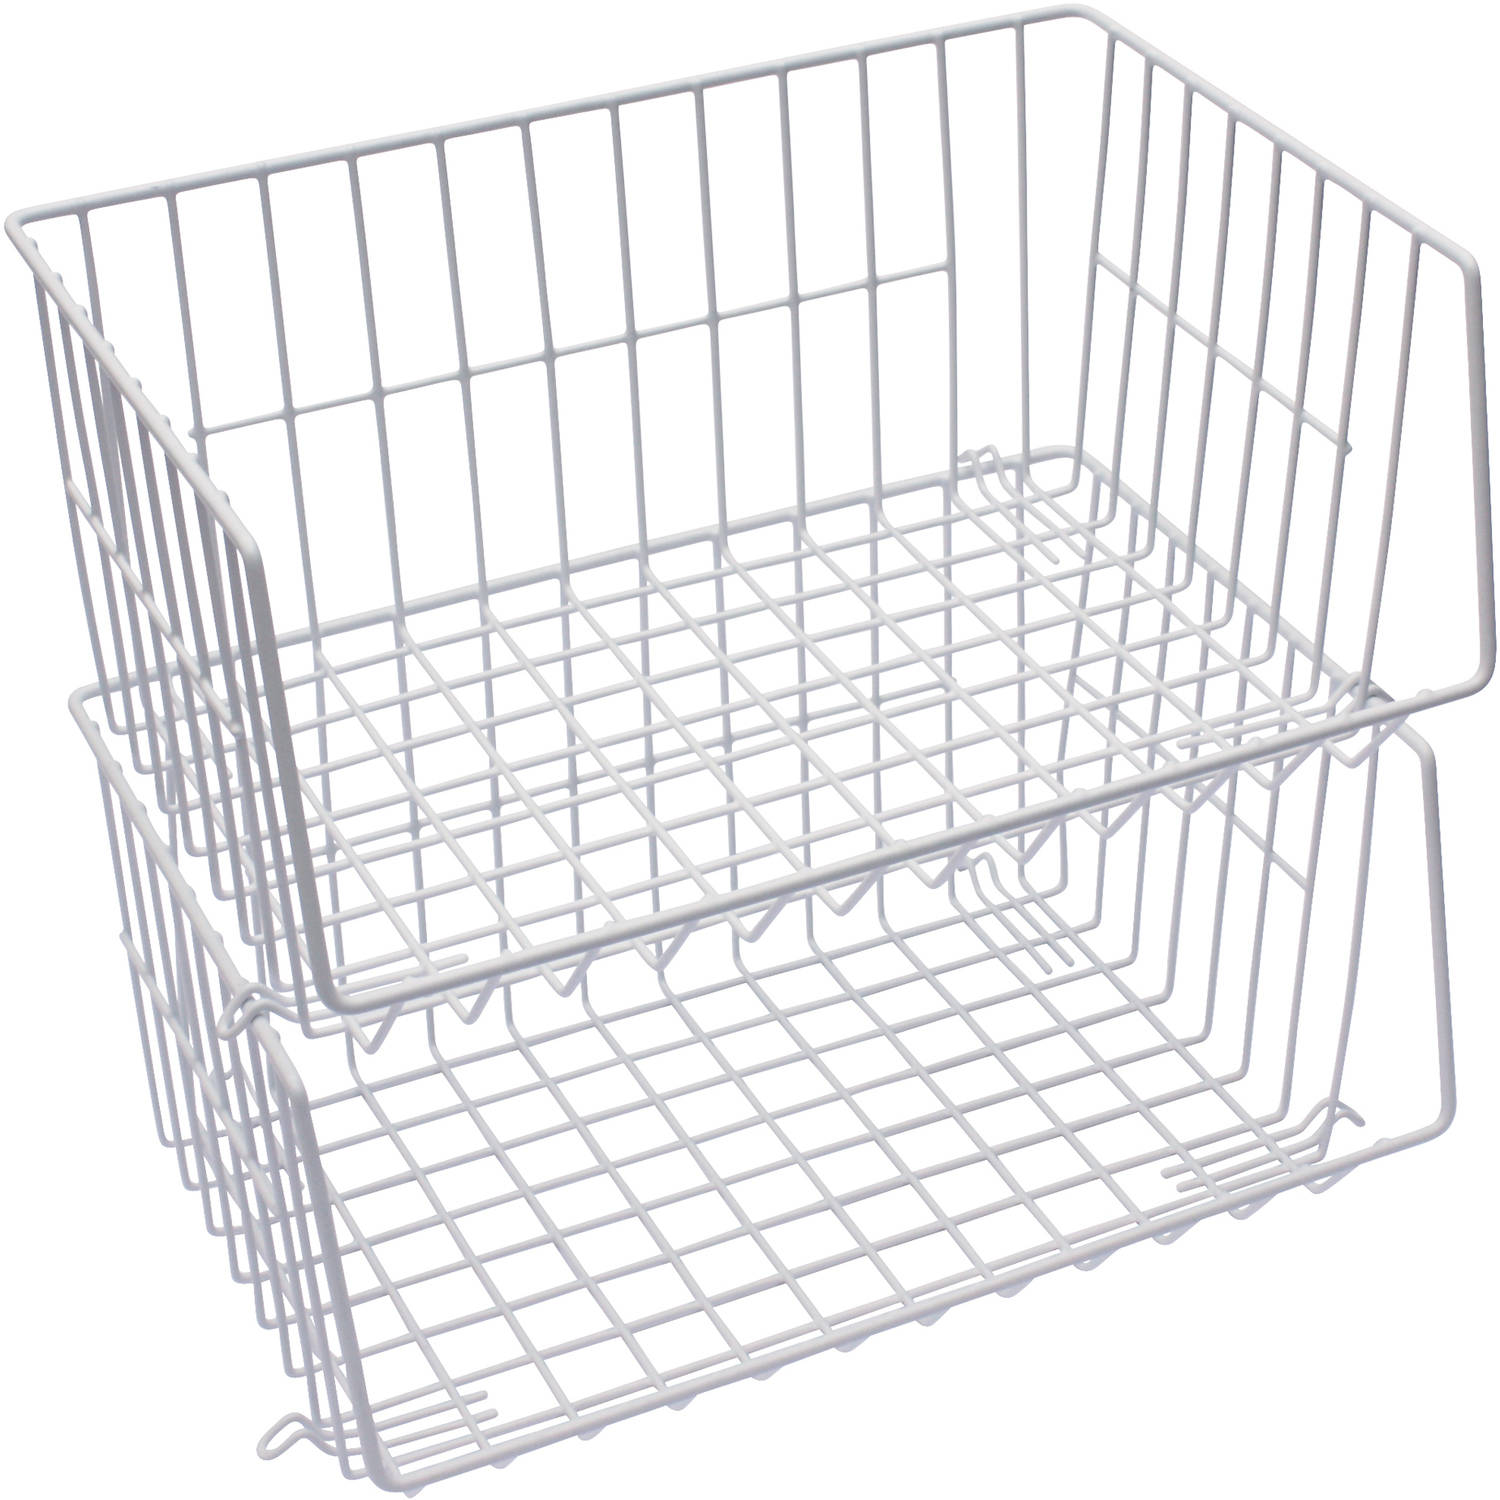 Mainstays Stacking Baskets, White, 2pk   Walmart.com